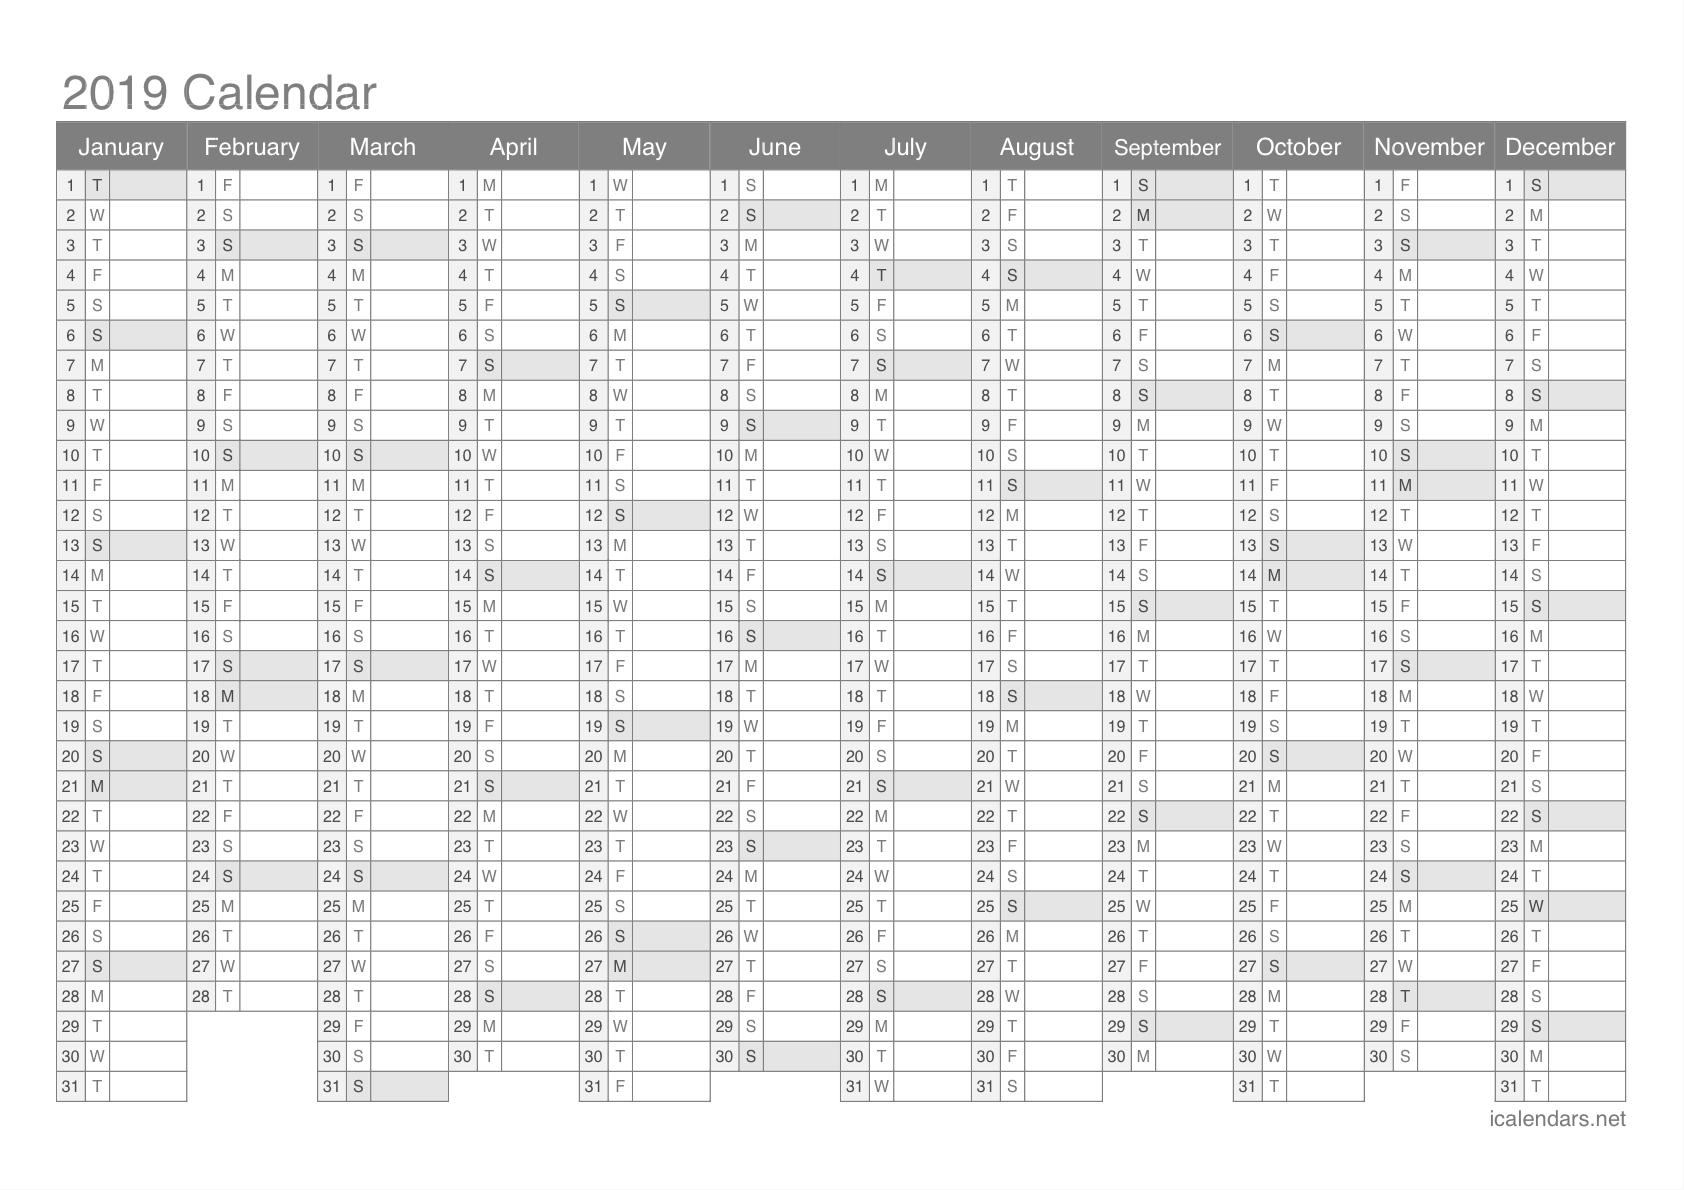 Year 2019 Calendar Template With Printable PDF Or Excel Icalendars Net